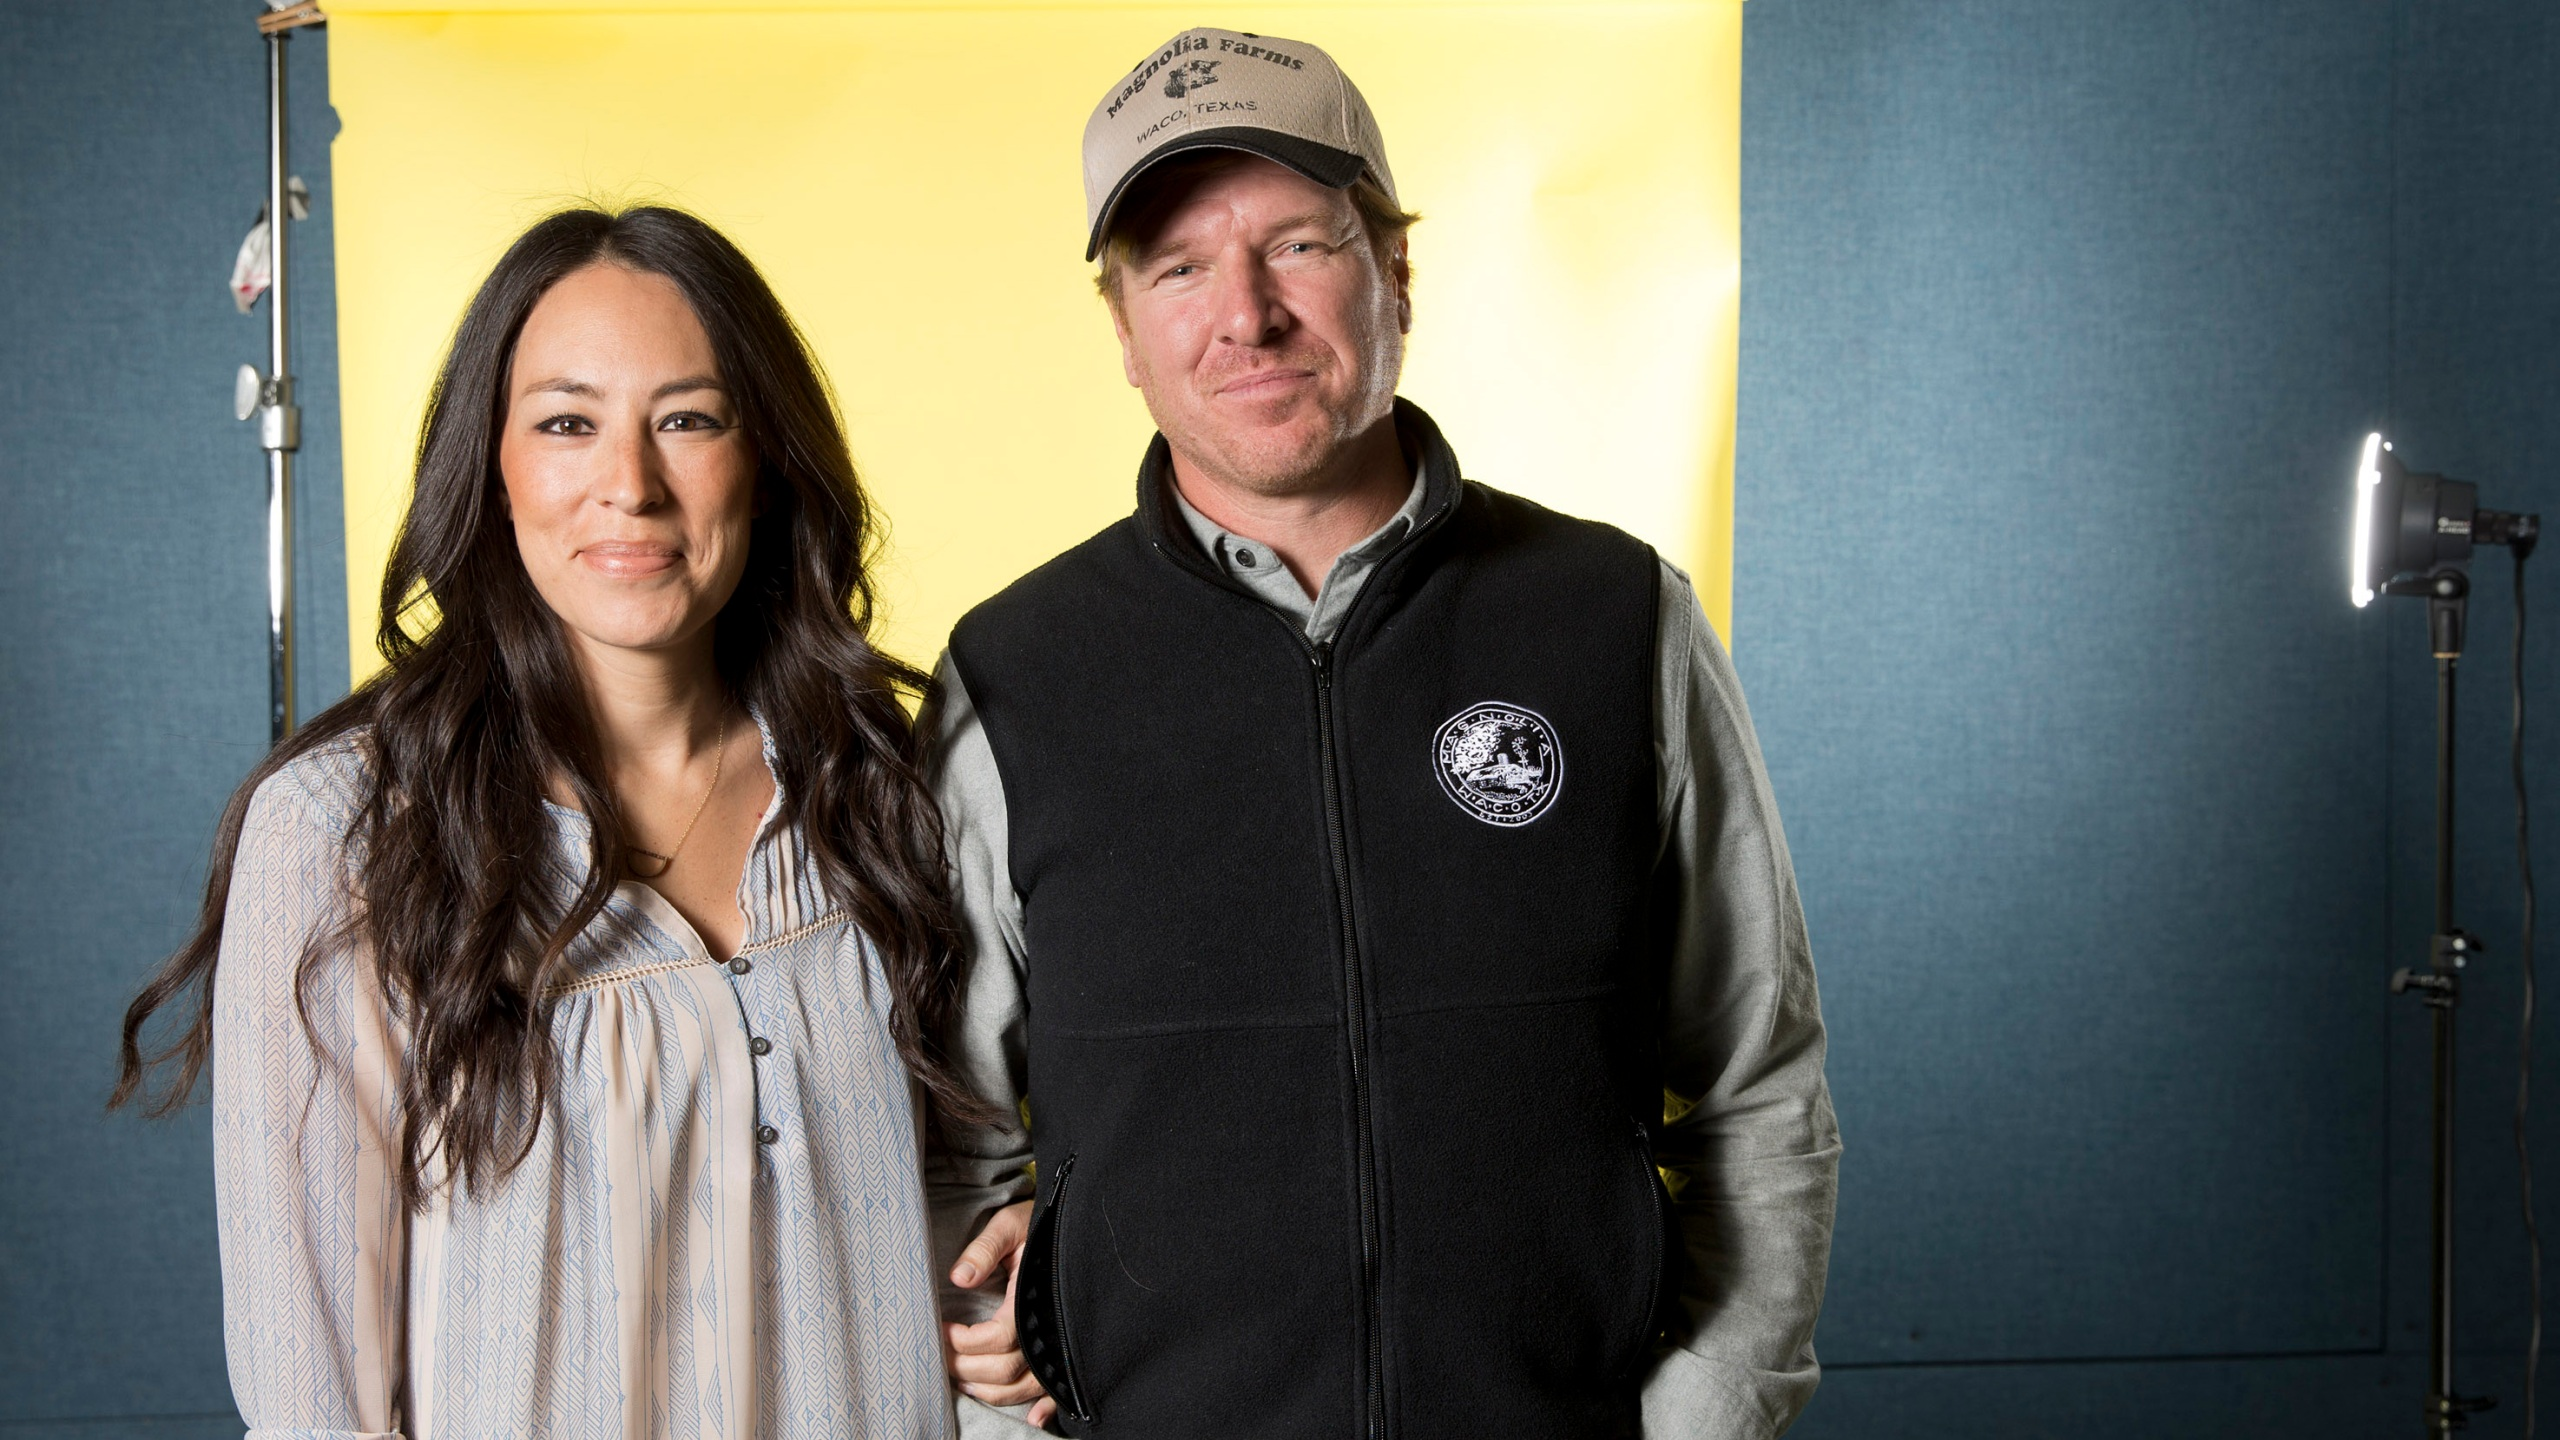 In this March 29, 2016 photo, Joanna Gaines, left, and Chip Gaines pose for a portrait in New York